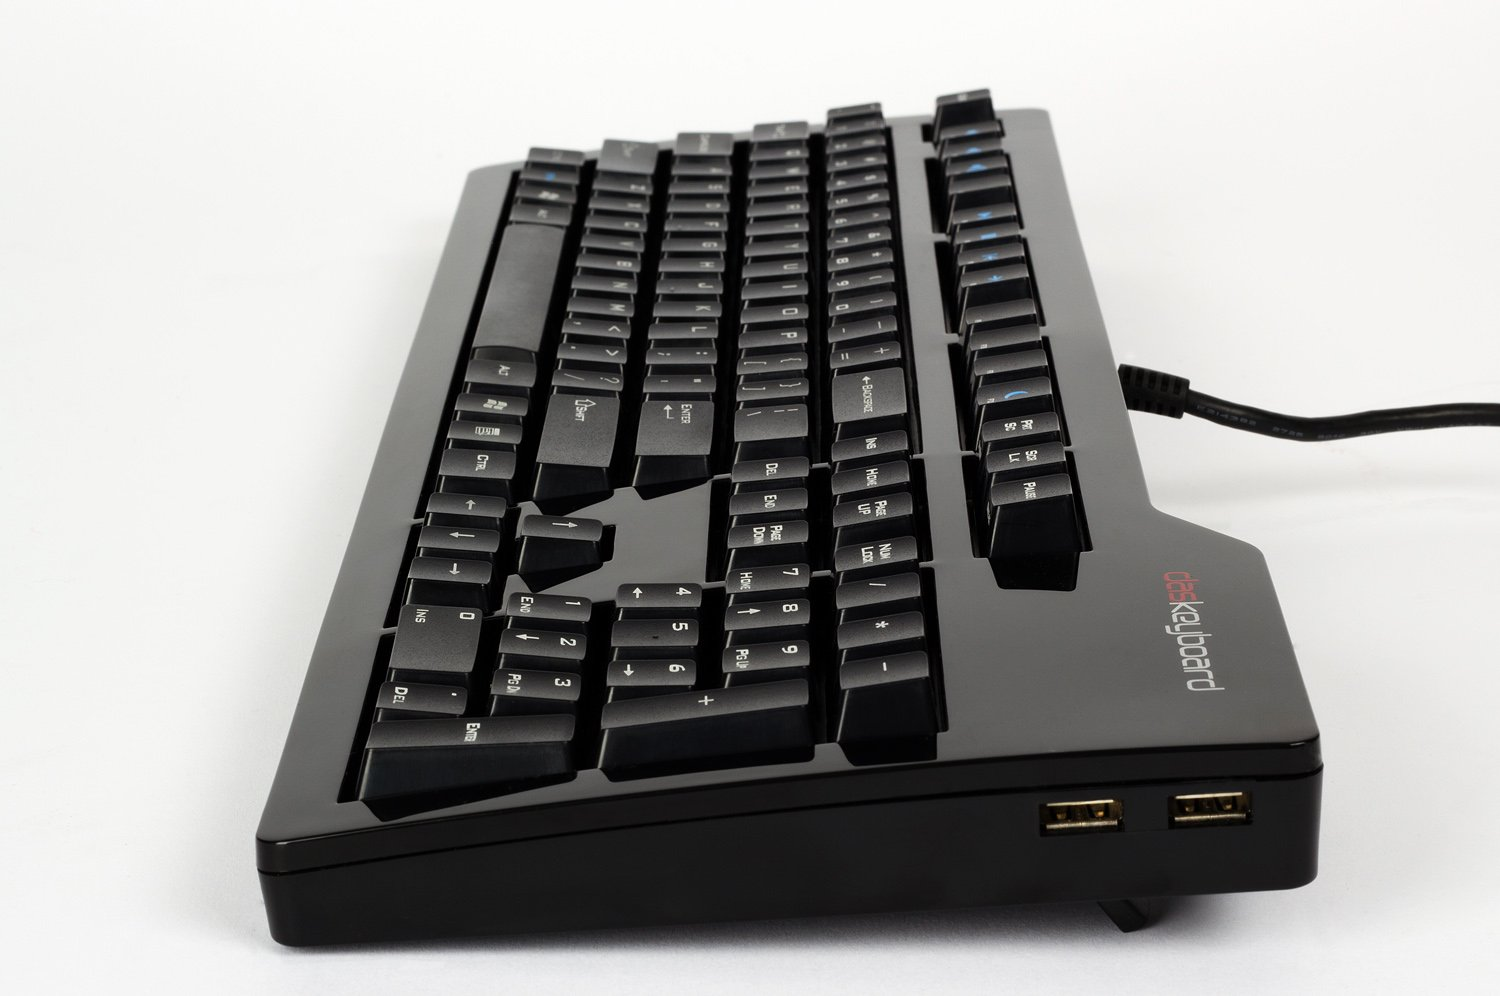 Das Keyboard Model S